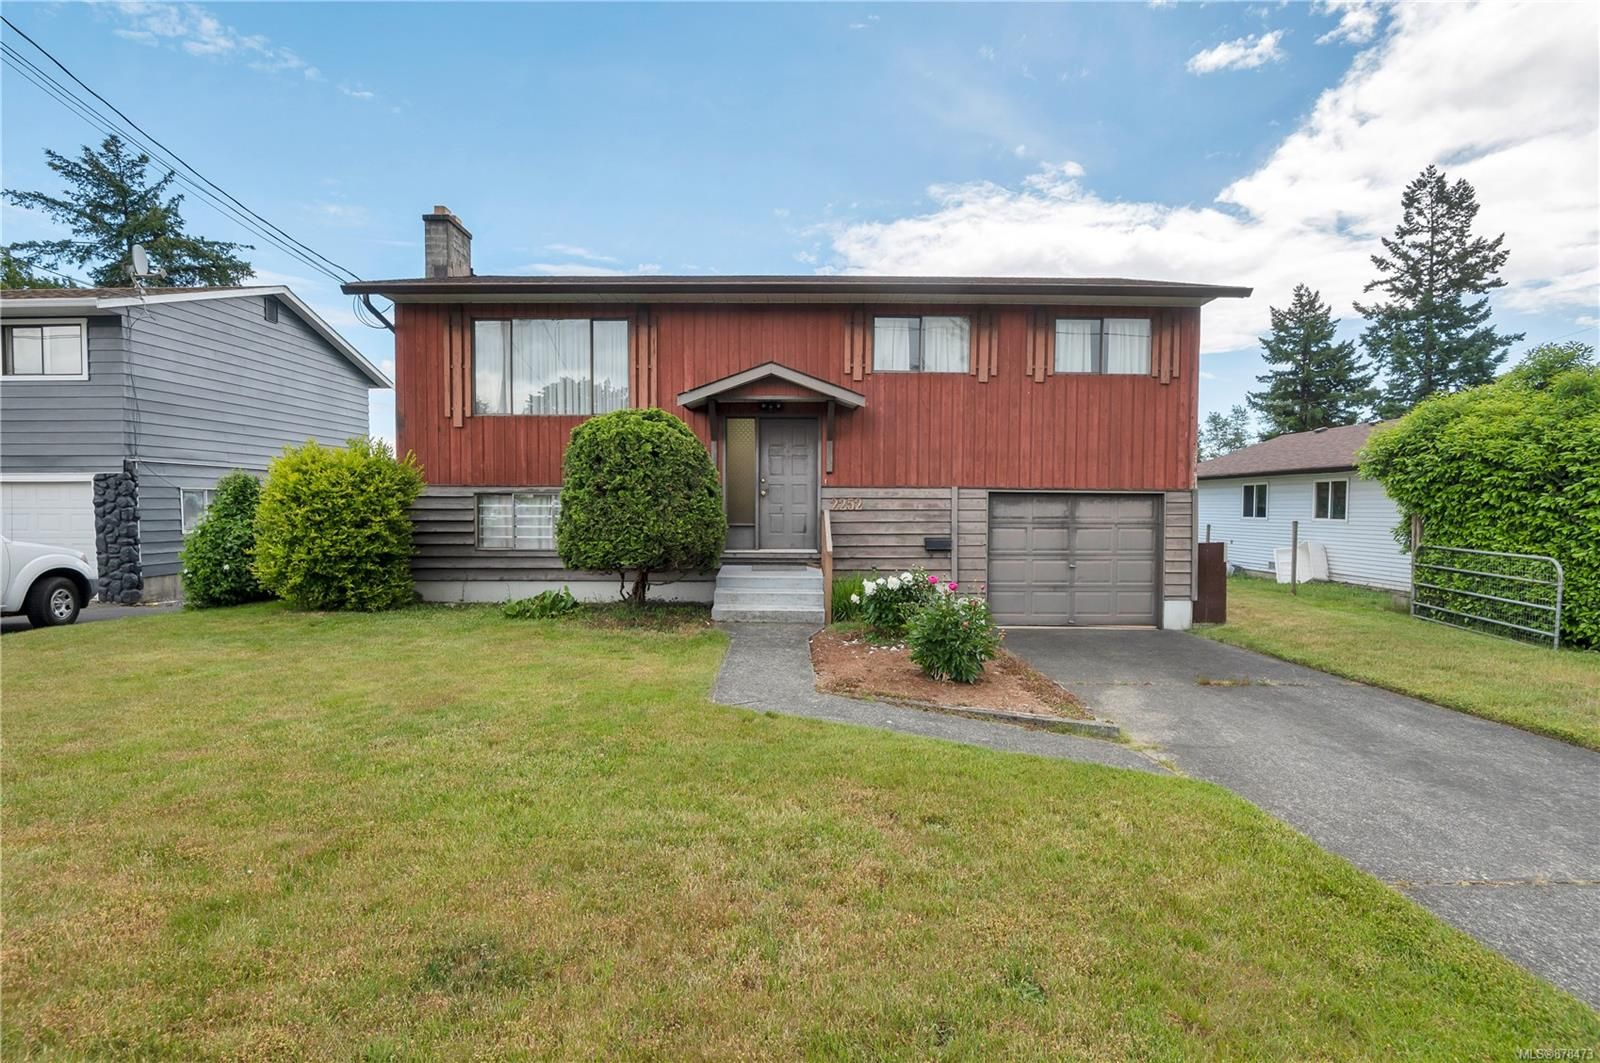 Main Photo: 2252 Grant Ave in : CV Courtenay City House for sale (Comox Valley)  : MLS®# 878473